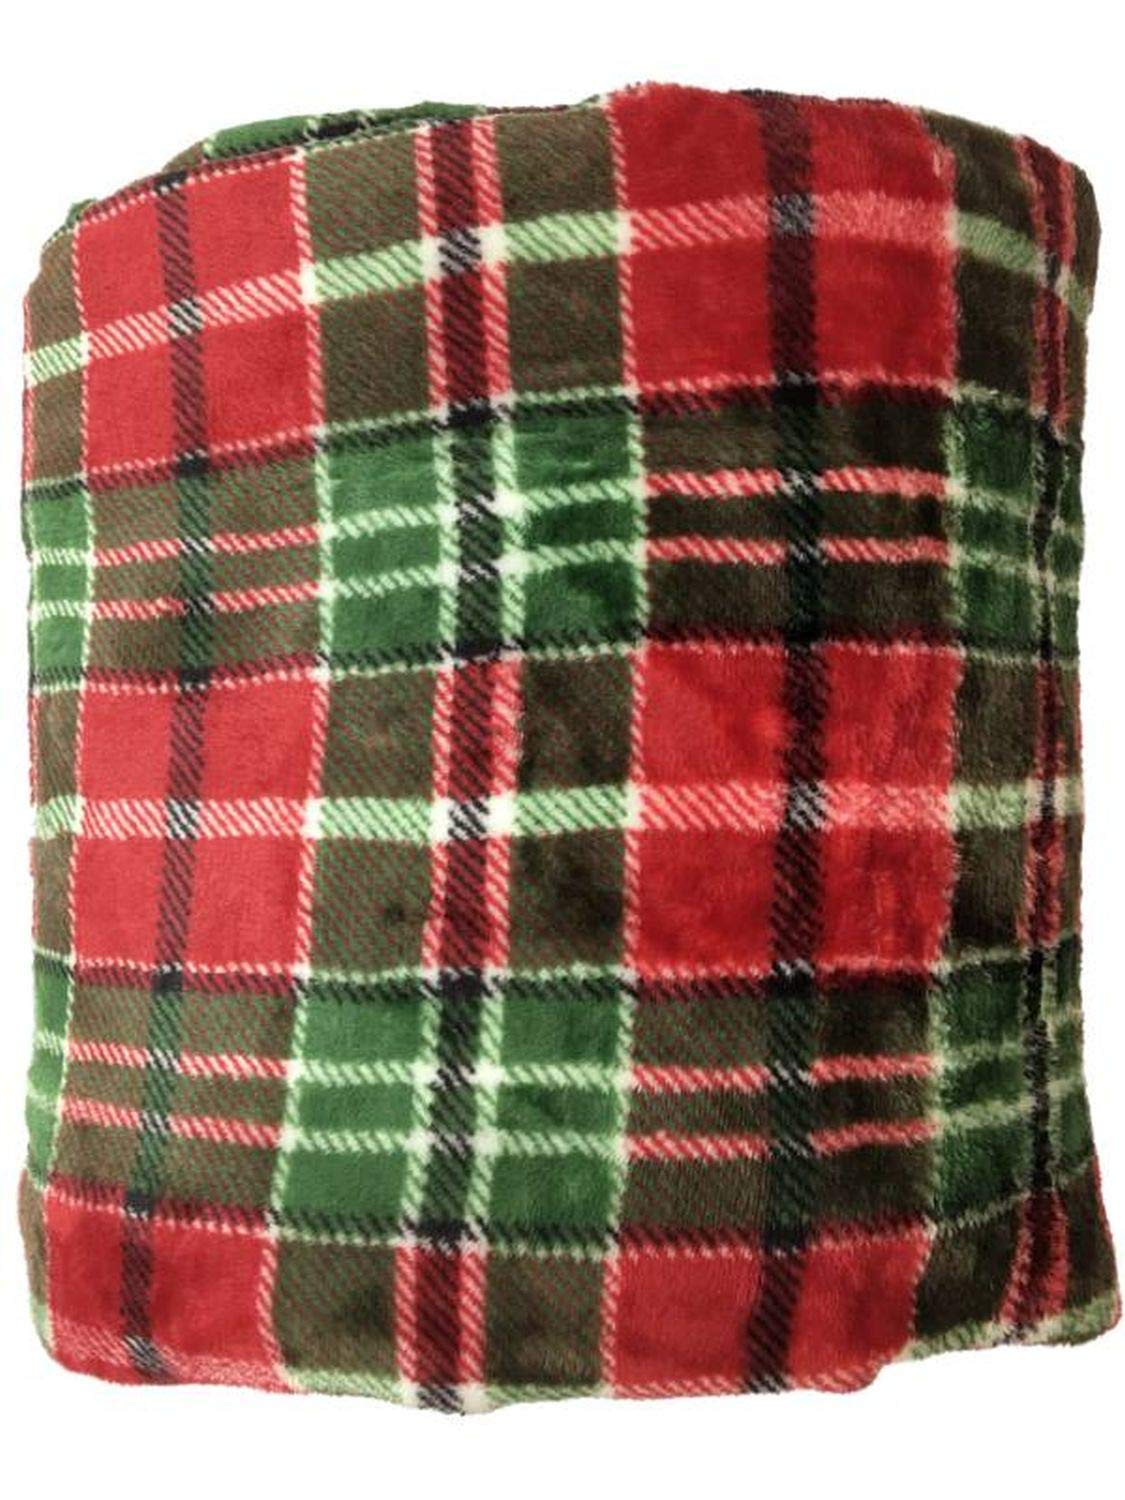 The Big One Supersoft Plush Throw (Christmas Plaid) by The Big One